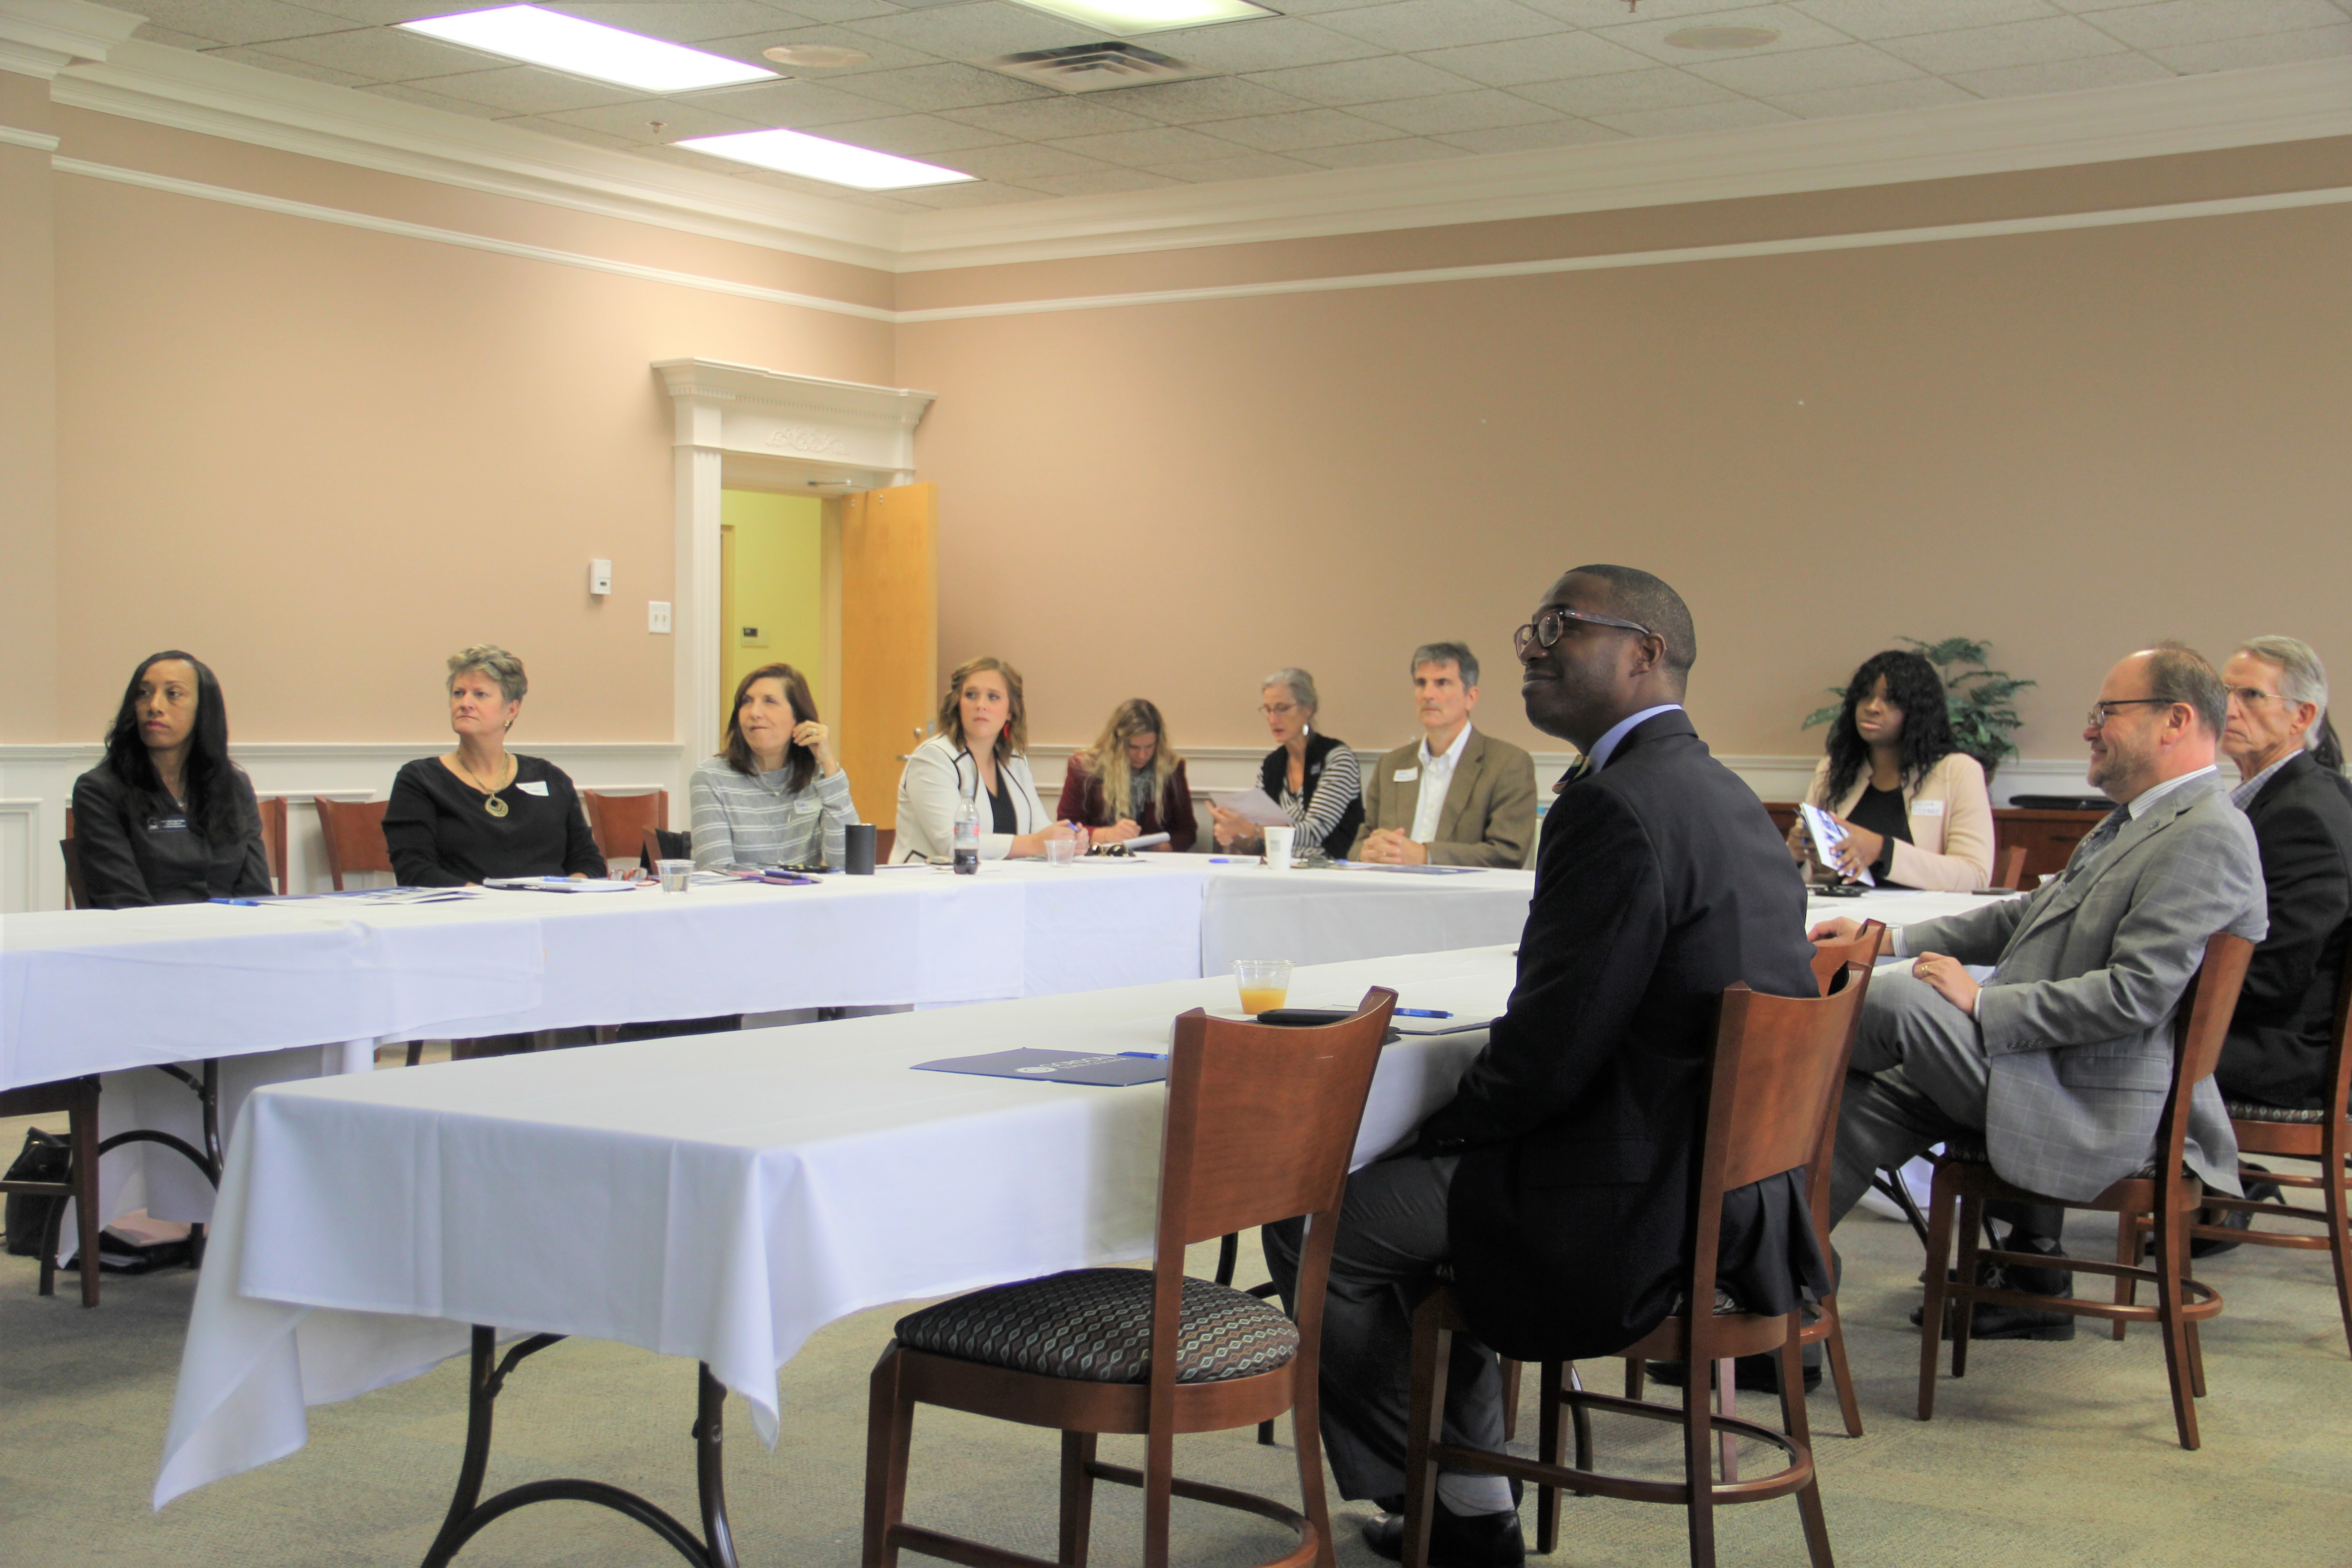 Gordon State College advisory boards met to provide guidance, advice for curricular changes and programs as the institution strives to maintain relevance in the workforce.